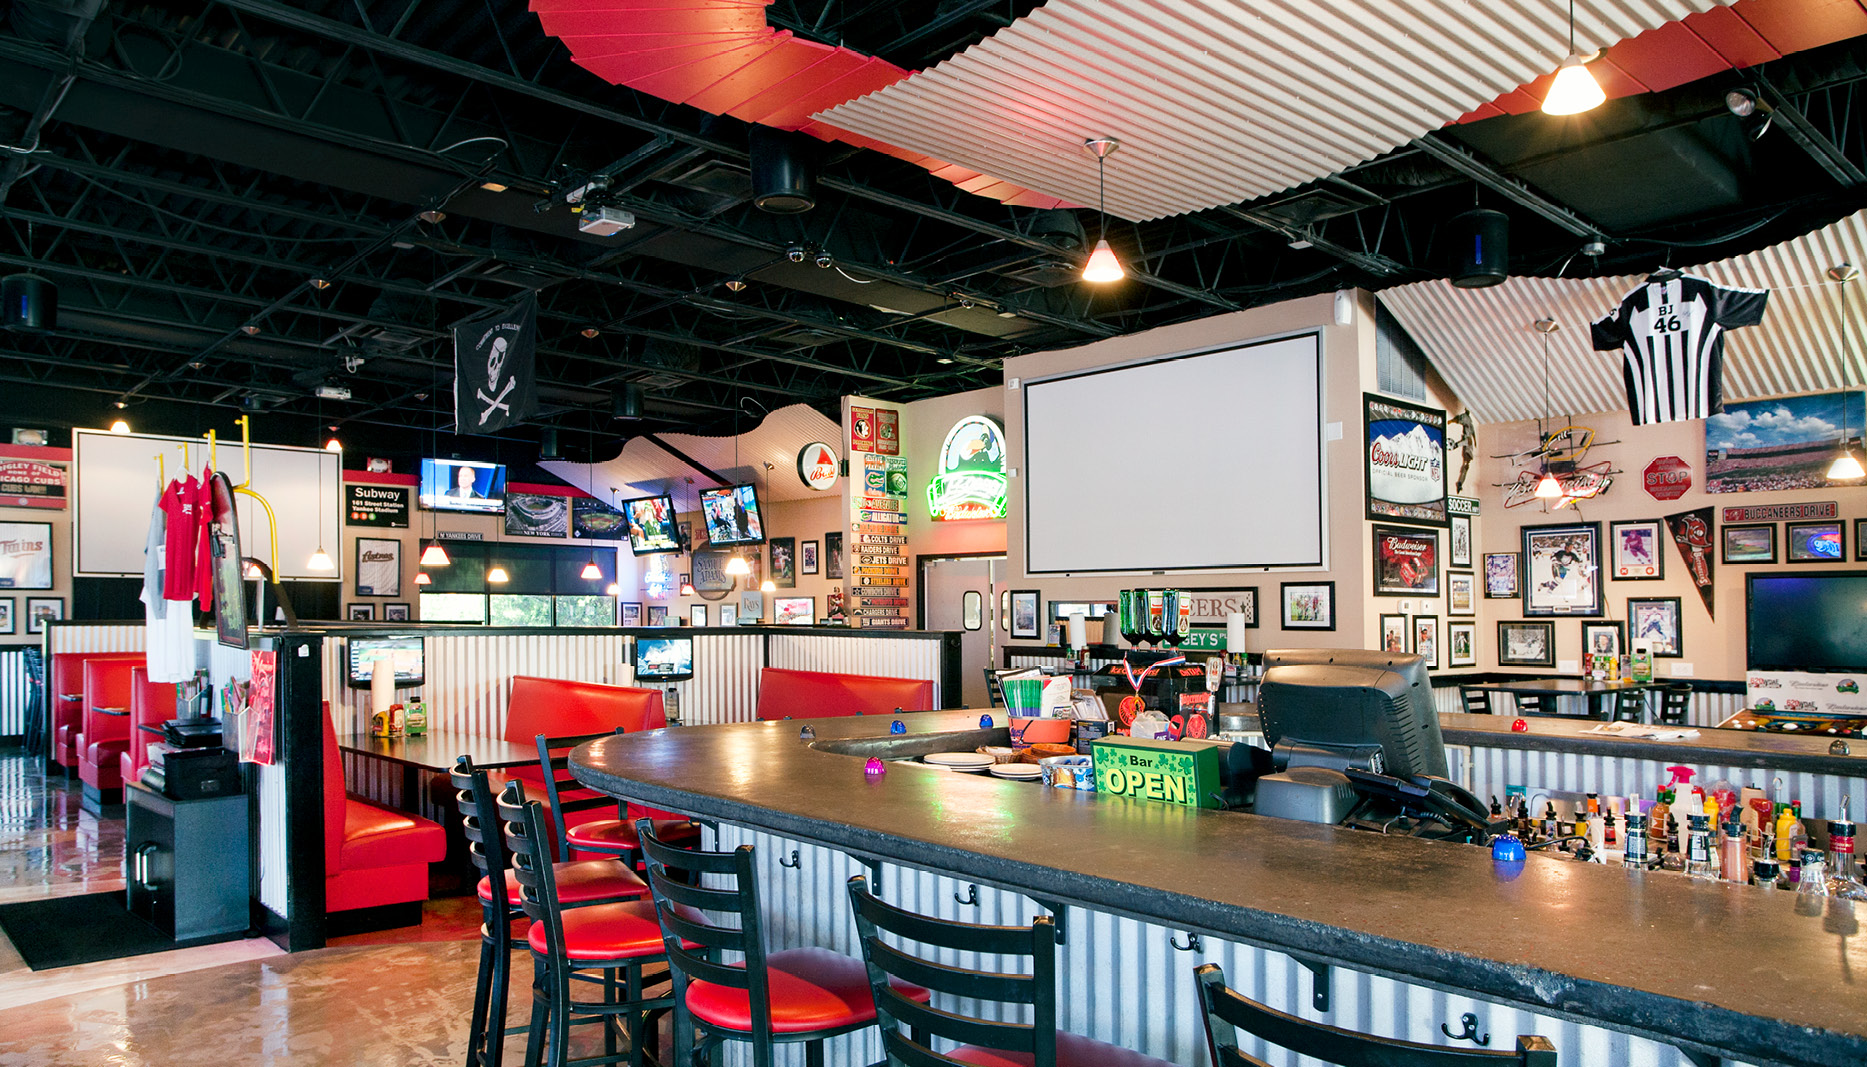 Bogey S Sport Bar Amp Grill Wbrc Architects Engineers